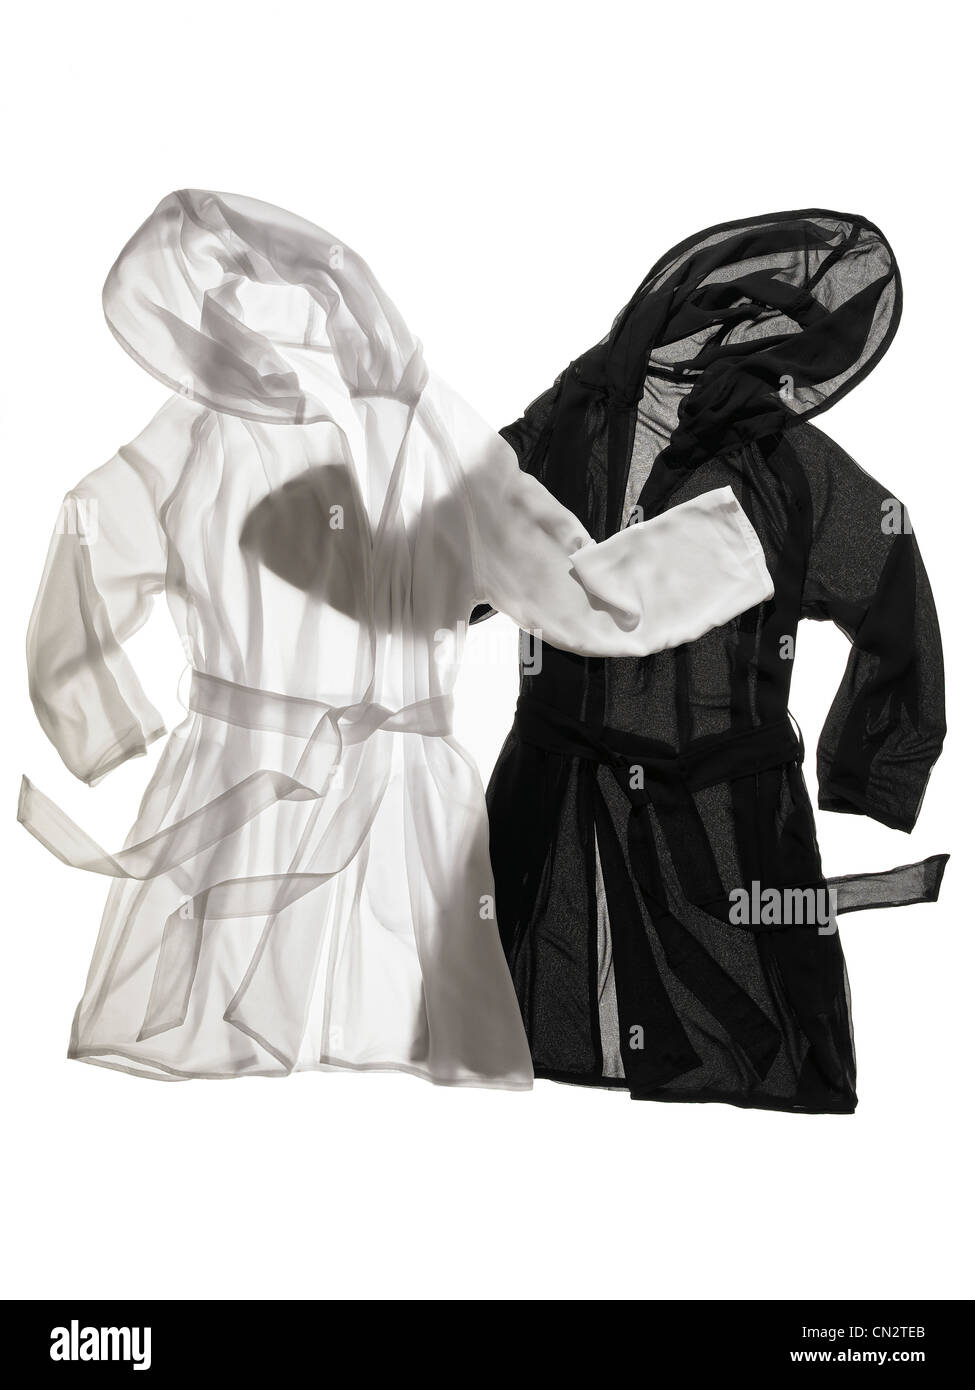 Black and White Sheer Hooded Robes - Stock Image